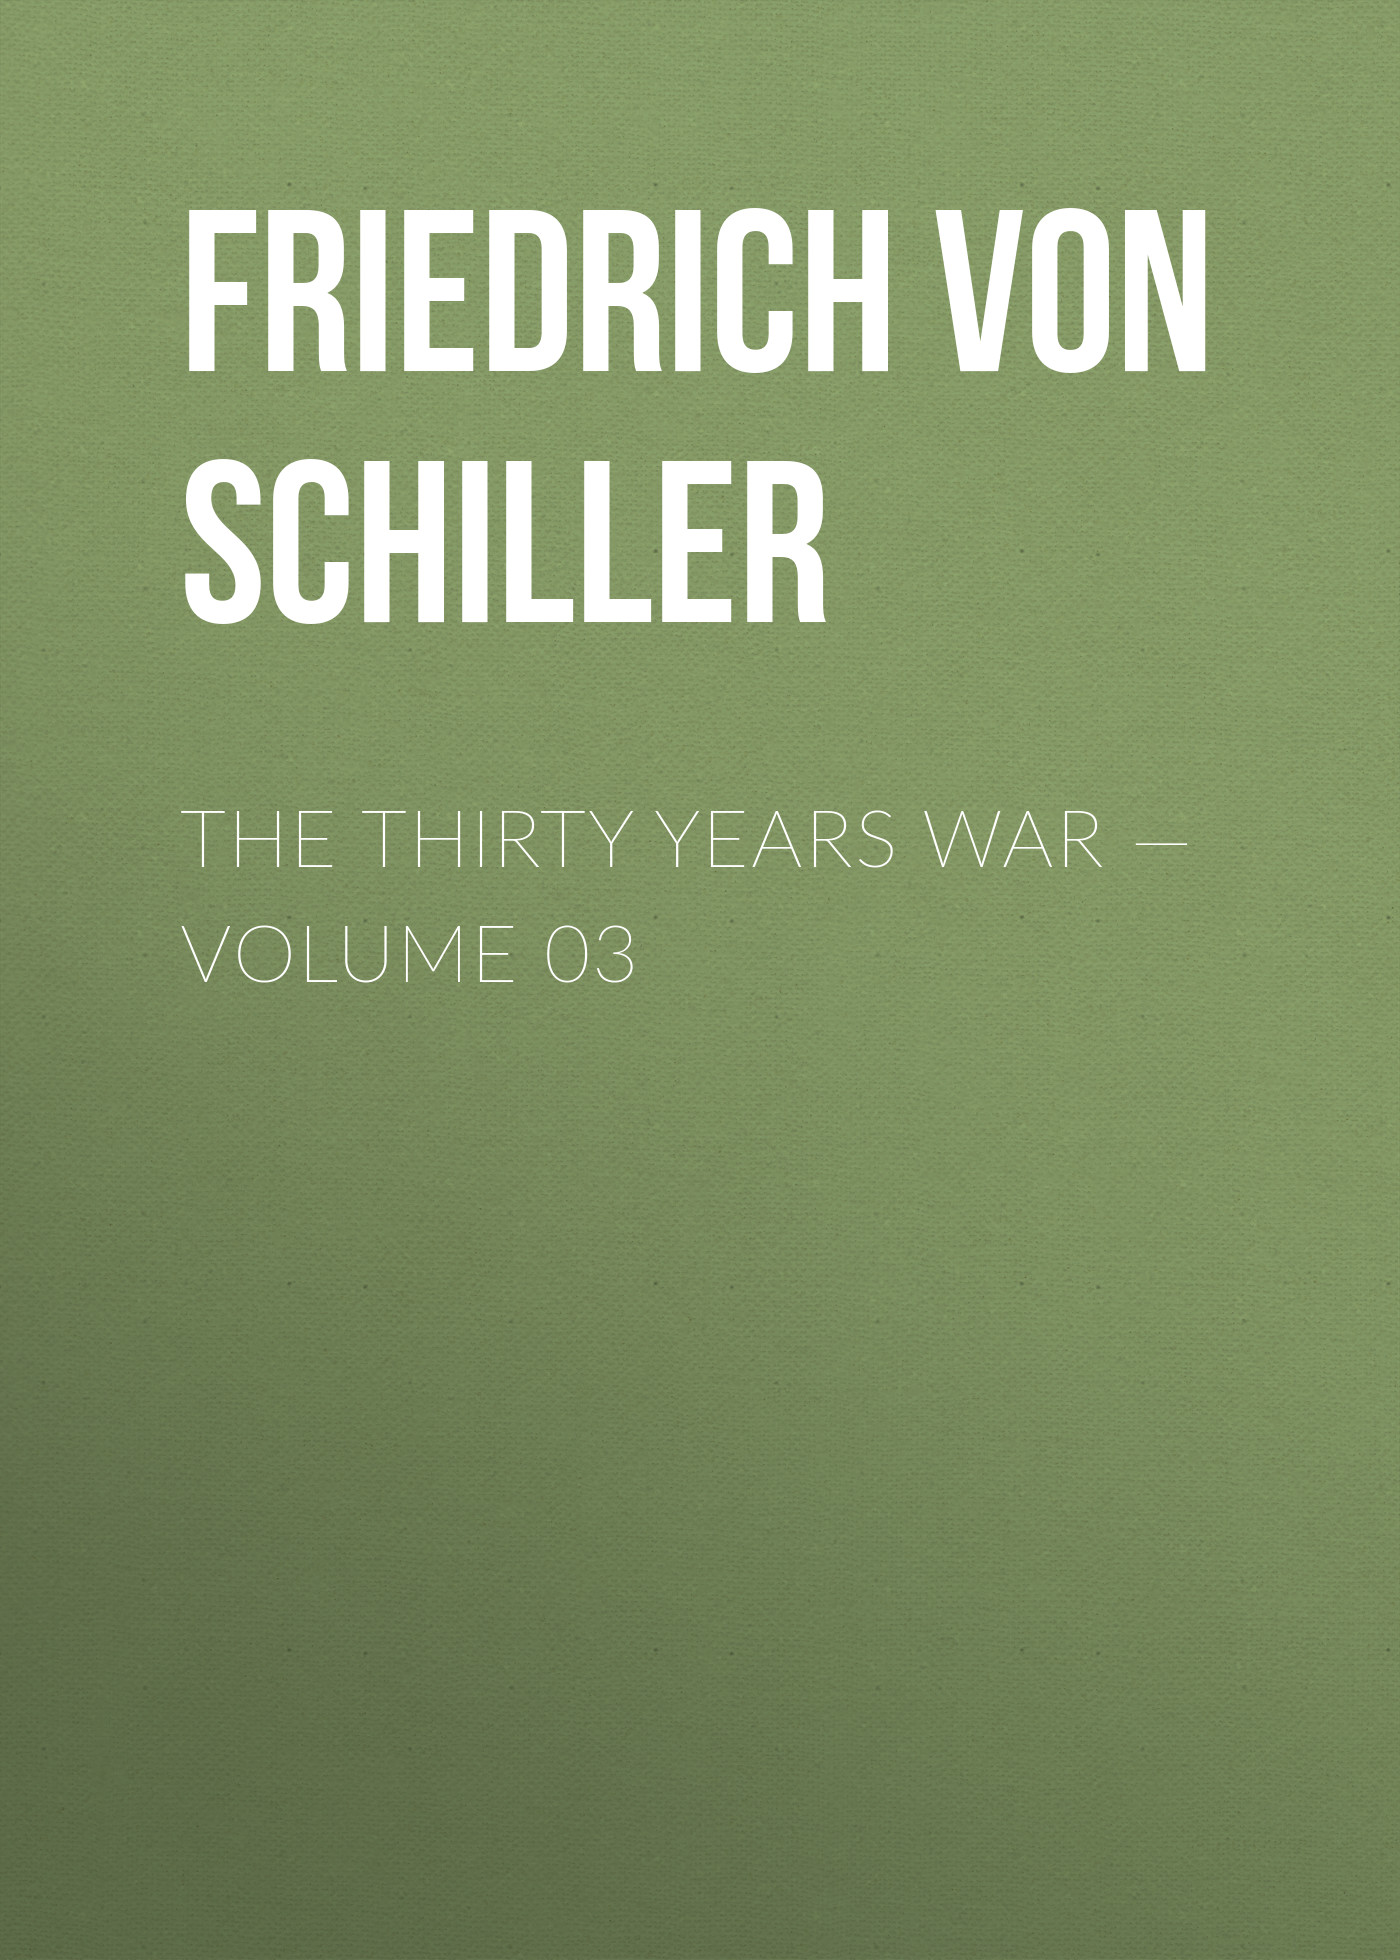 лучшая цена Friedrich von Schiller The Thirty Years War — Volume 03